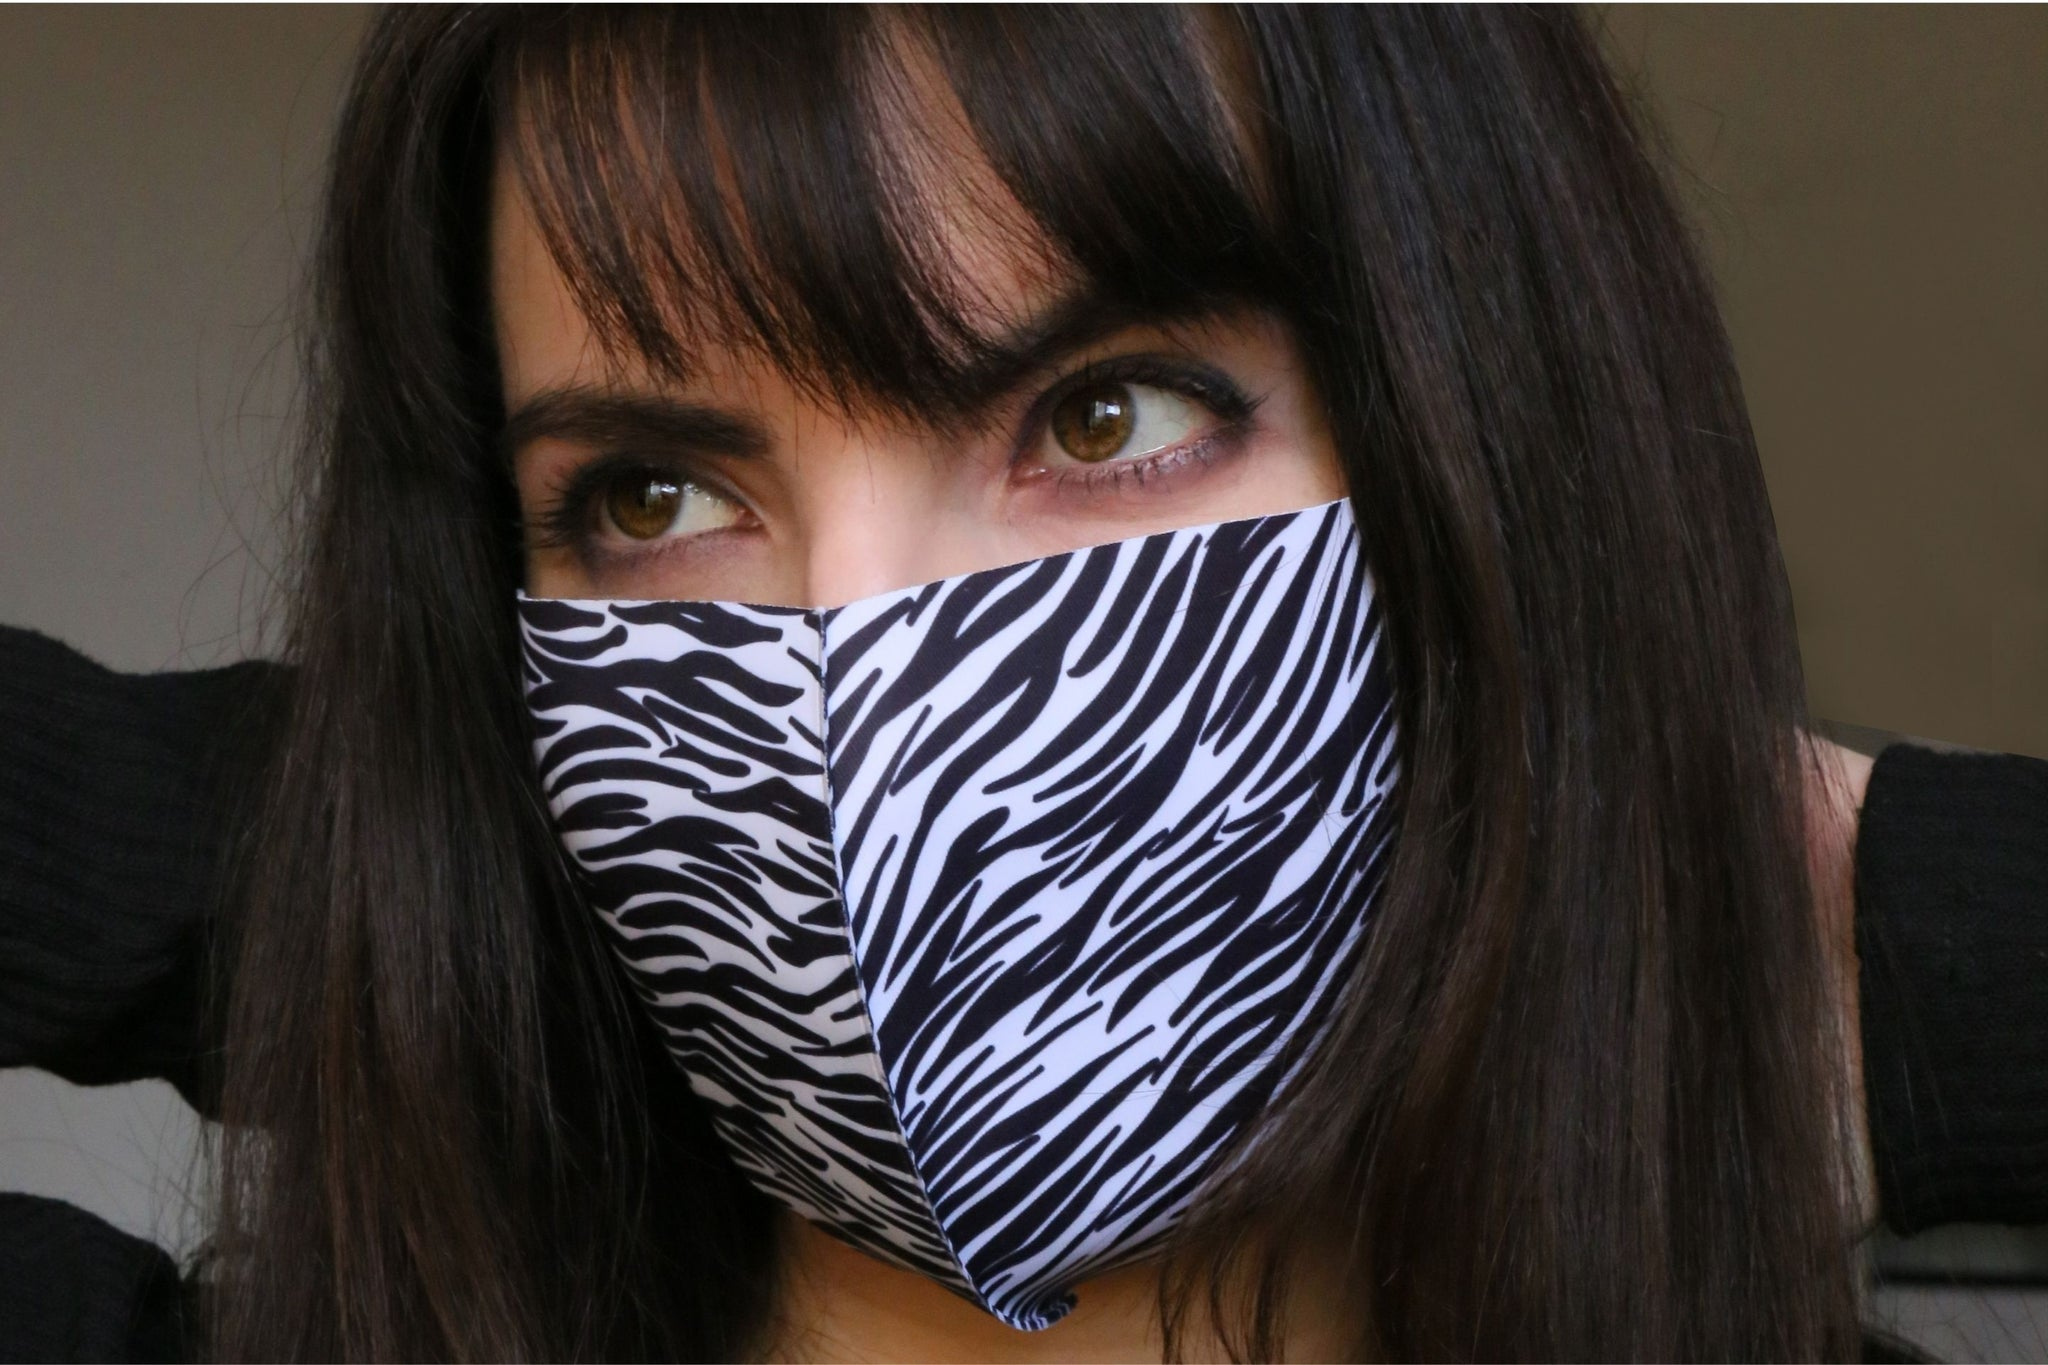 5 Things You Can Do To Make Face Coverings More Effective